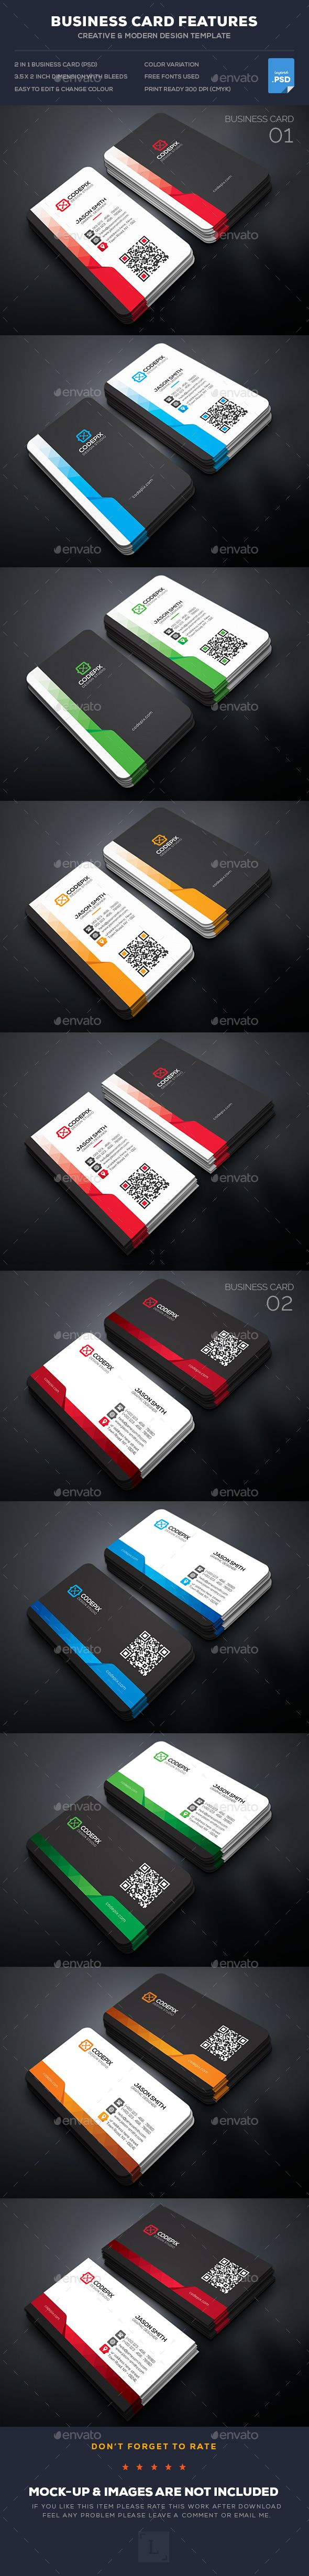 237 best images about business card on pinterest